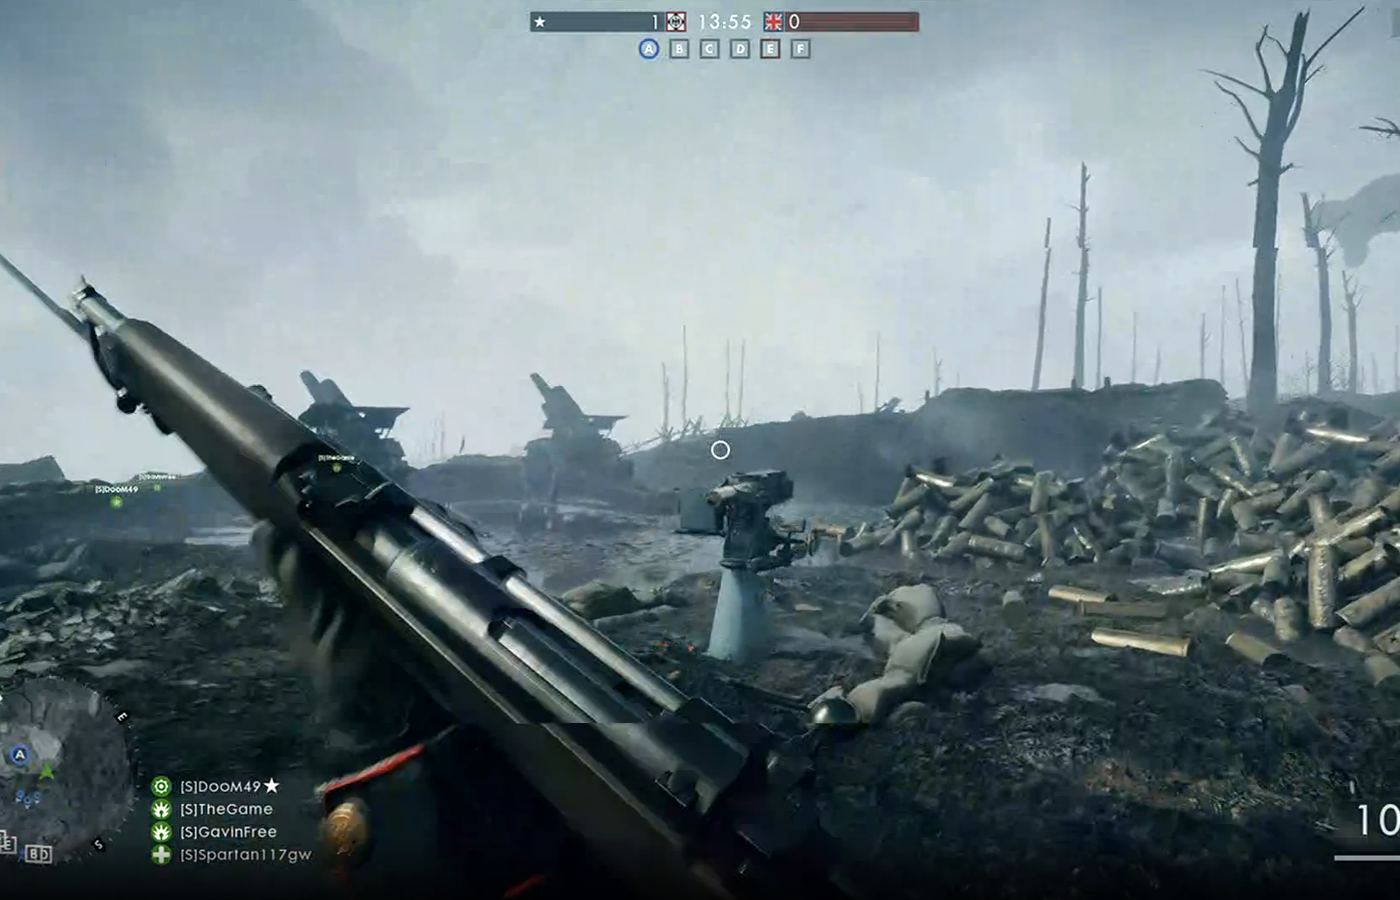 /attachments/039073202217051210084111061148179146032245001228/Battlefield1Featured.png